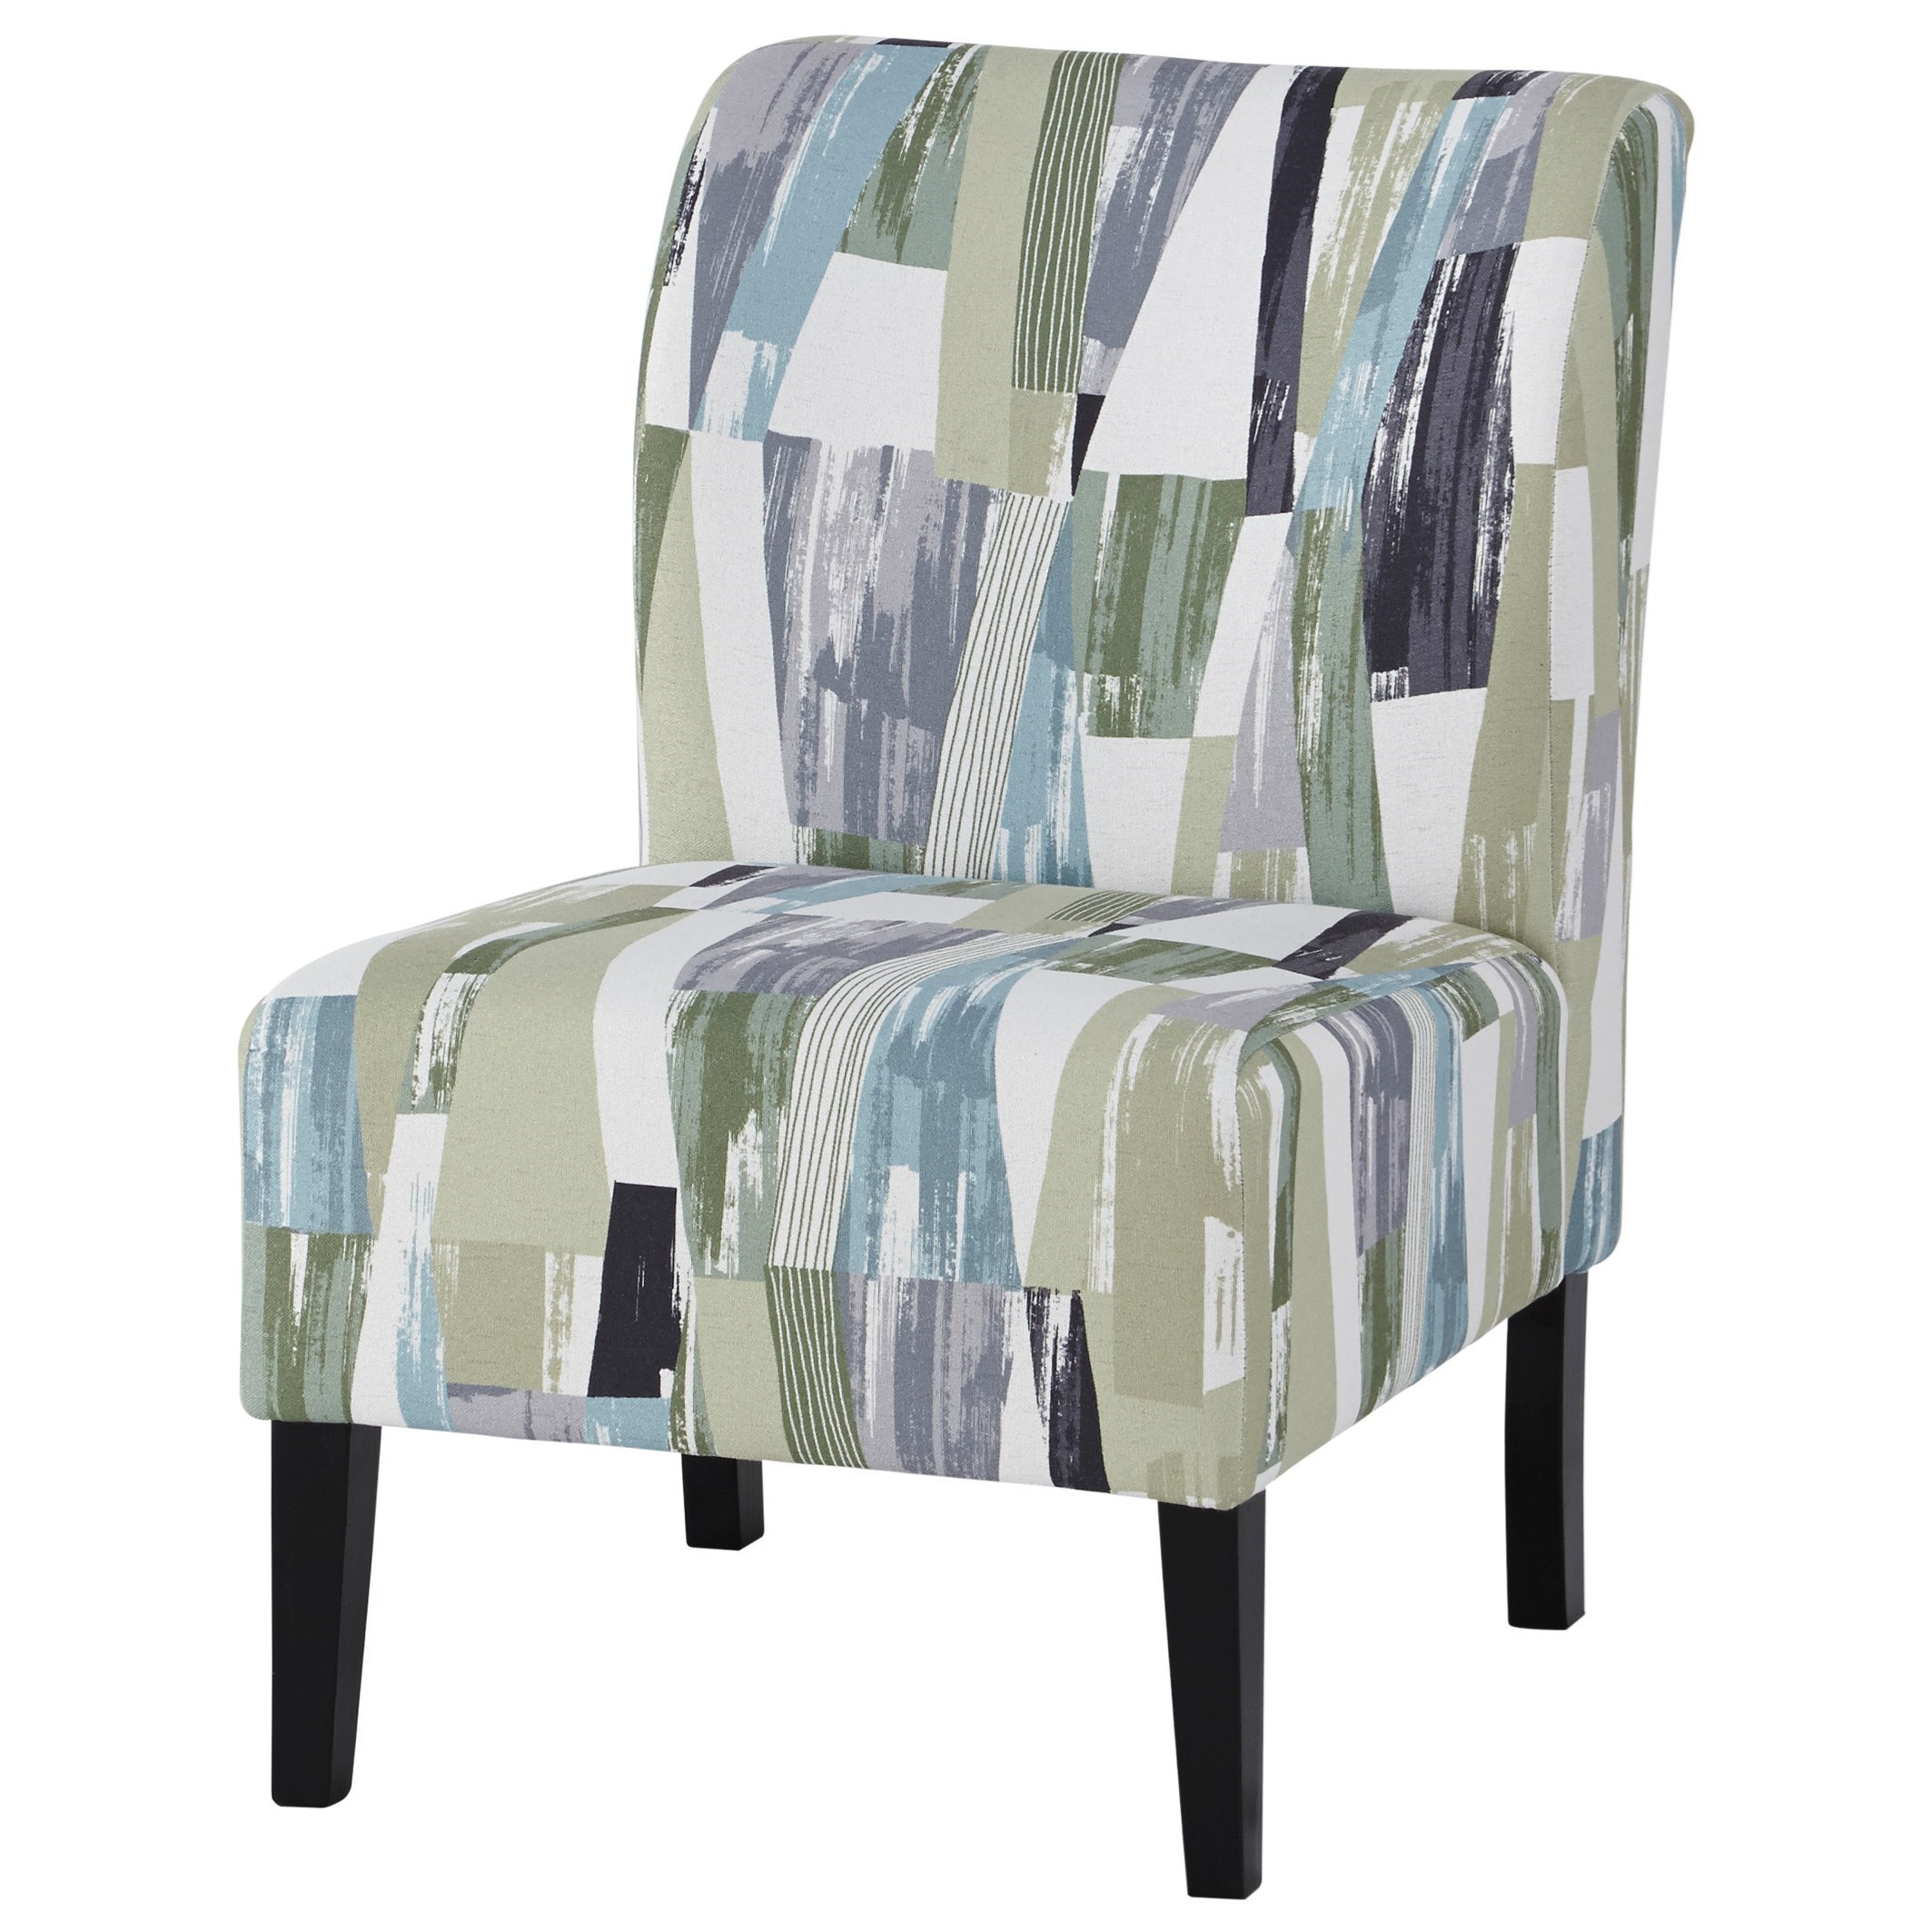 Triptis Accent Chair by Signature Design by Ashley at Zak's Warehouse Clearance Center